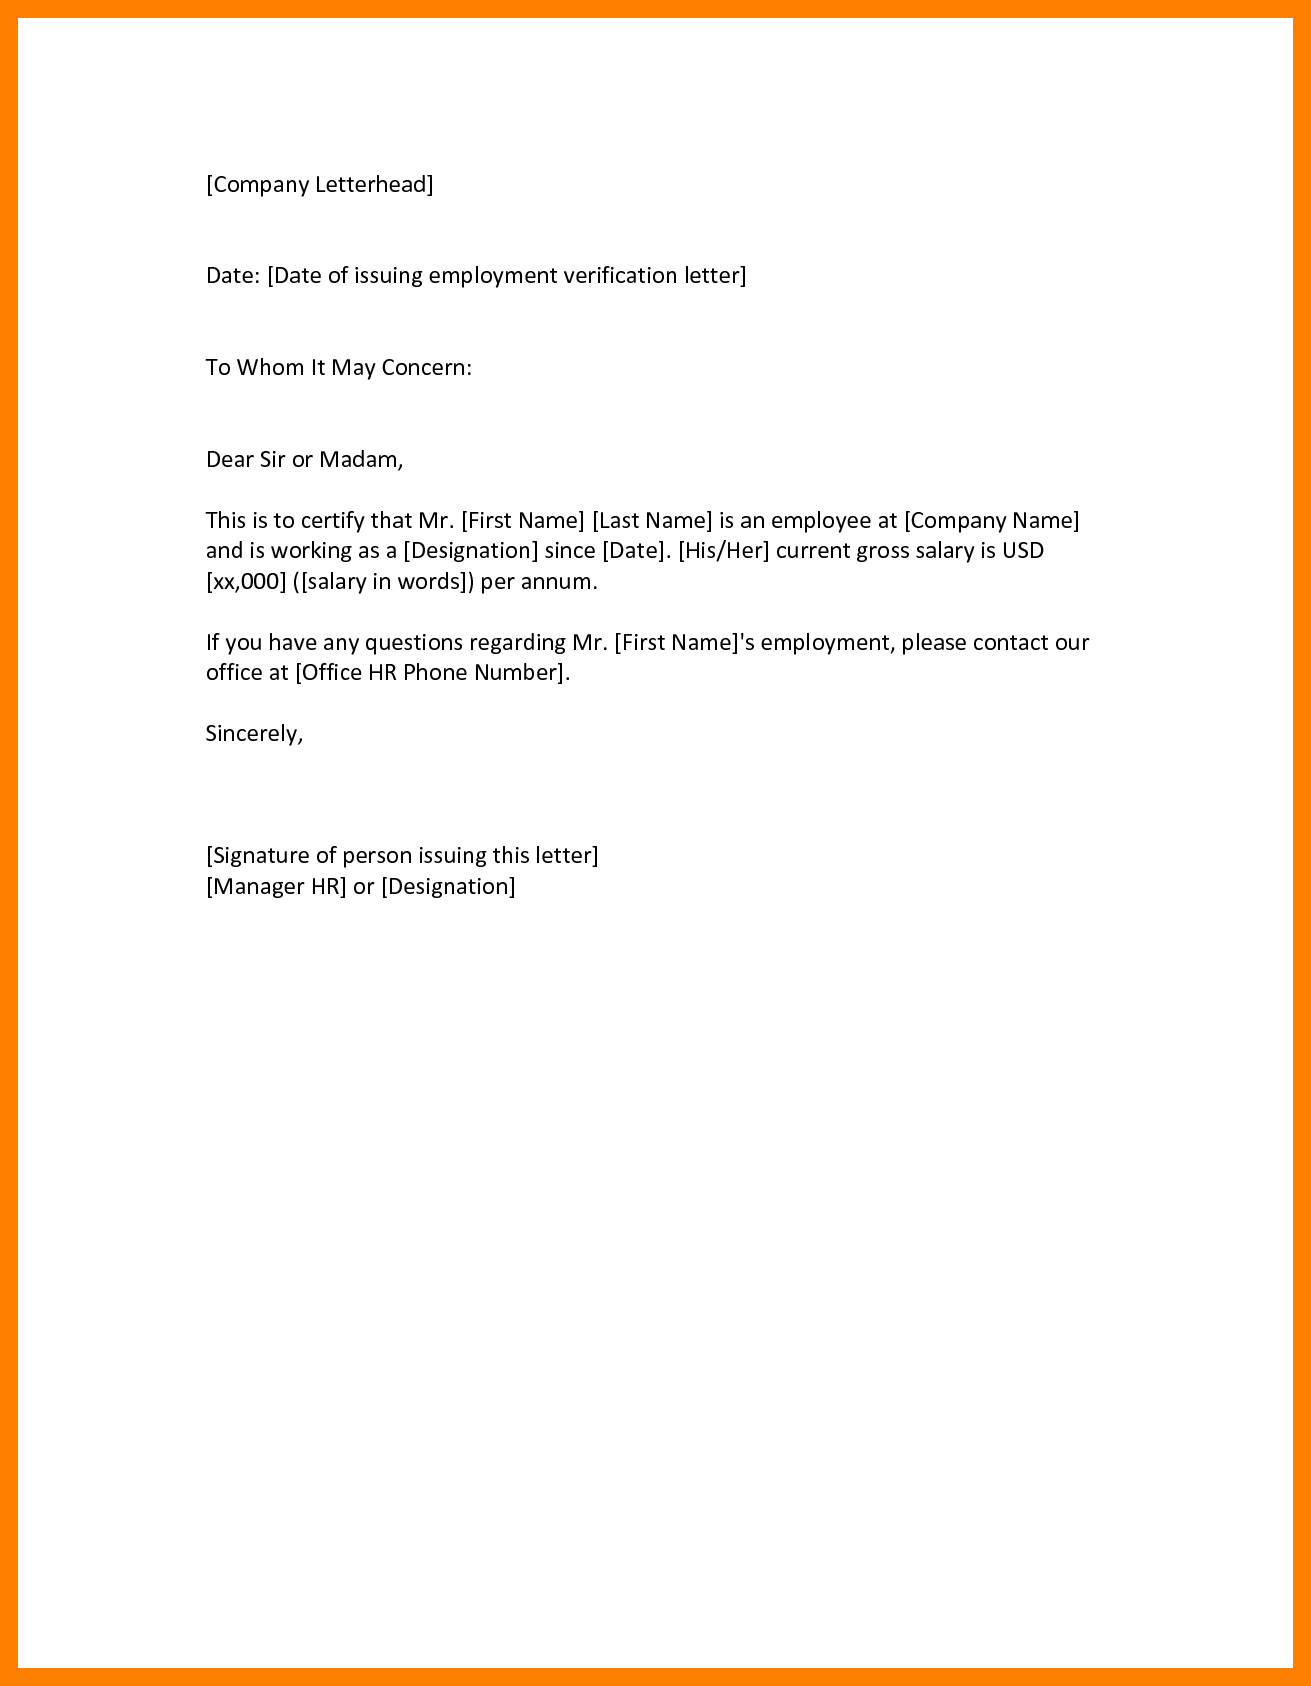 covering letter to whom it may concern - employment verification letter to whom it may concern